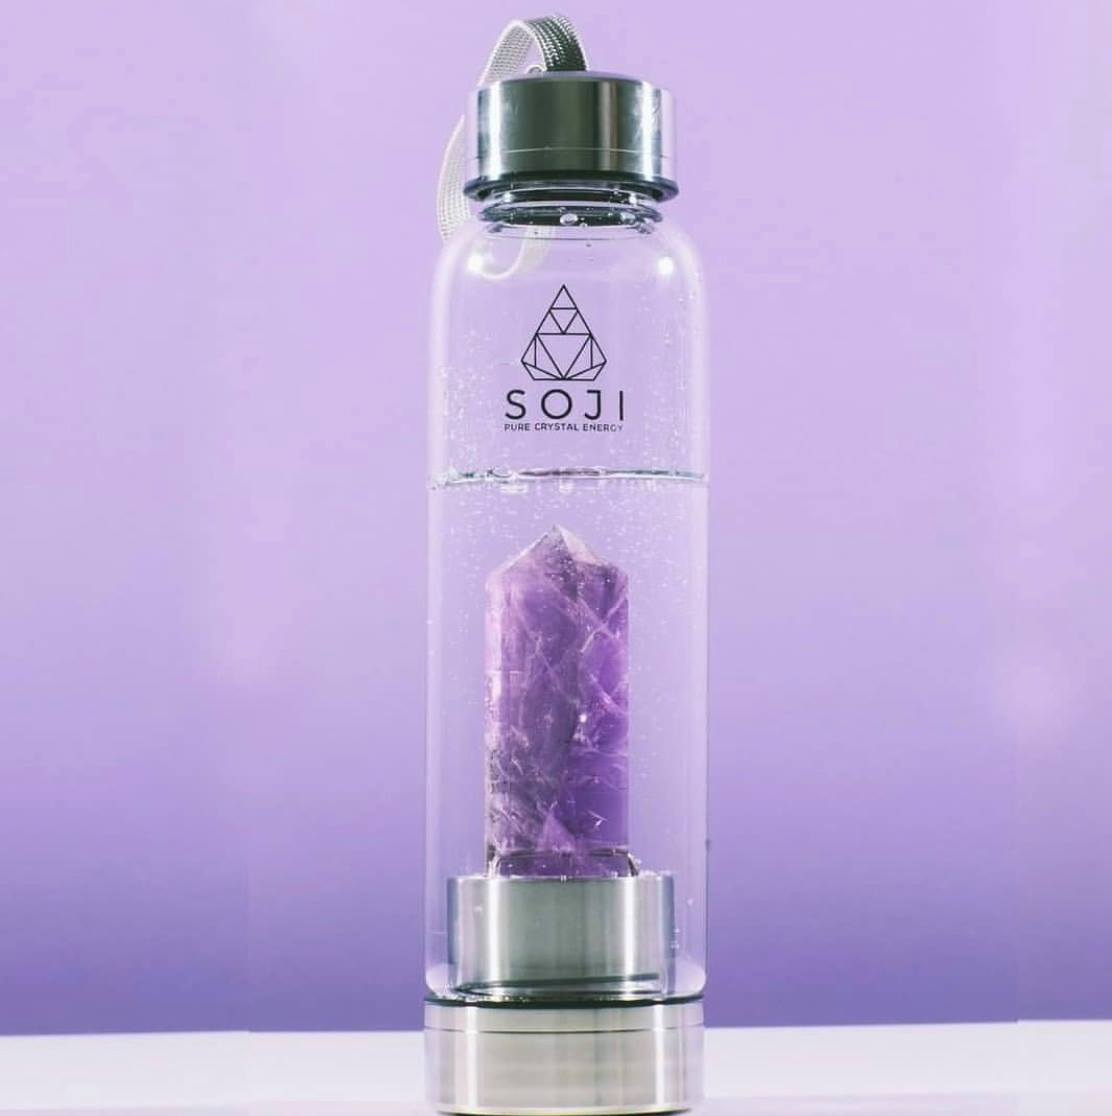 Soji Crystal Elixir Water Bottles sold by Kaitlyn Beaver